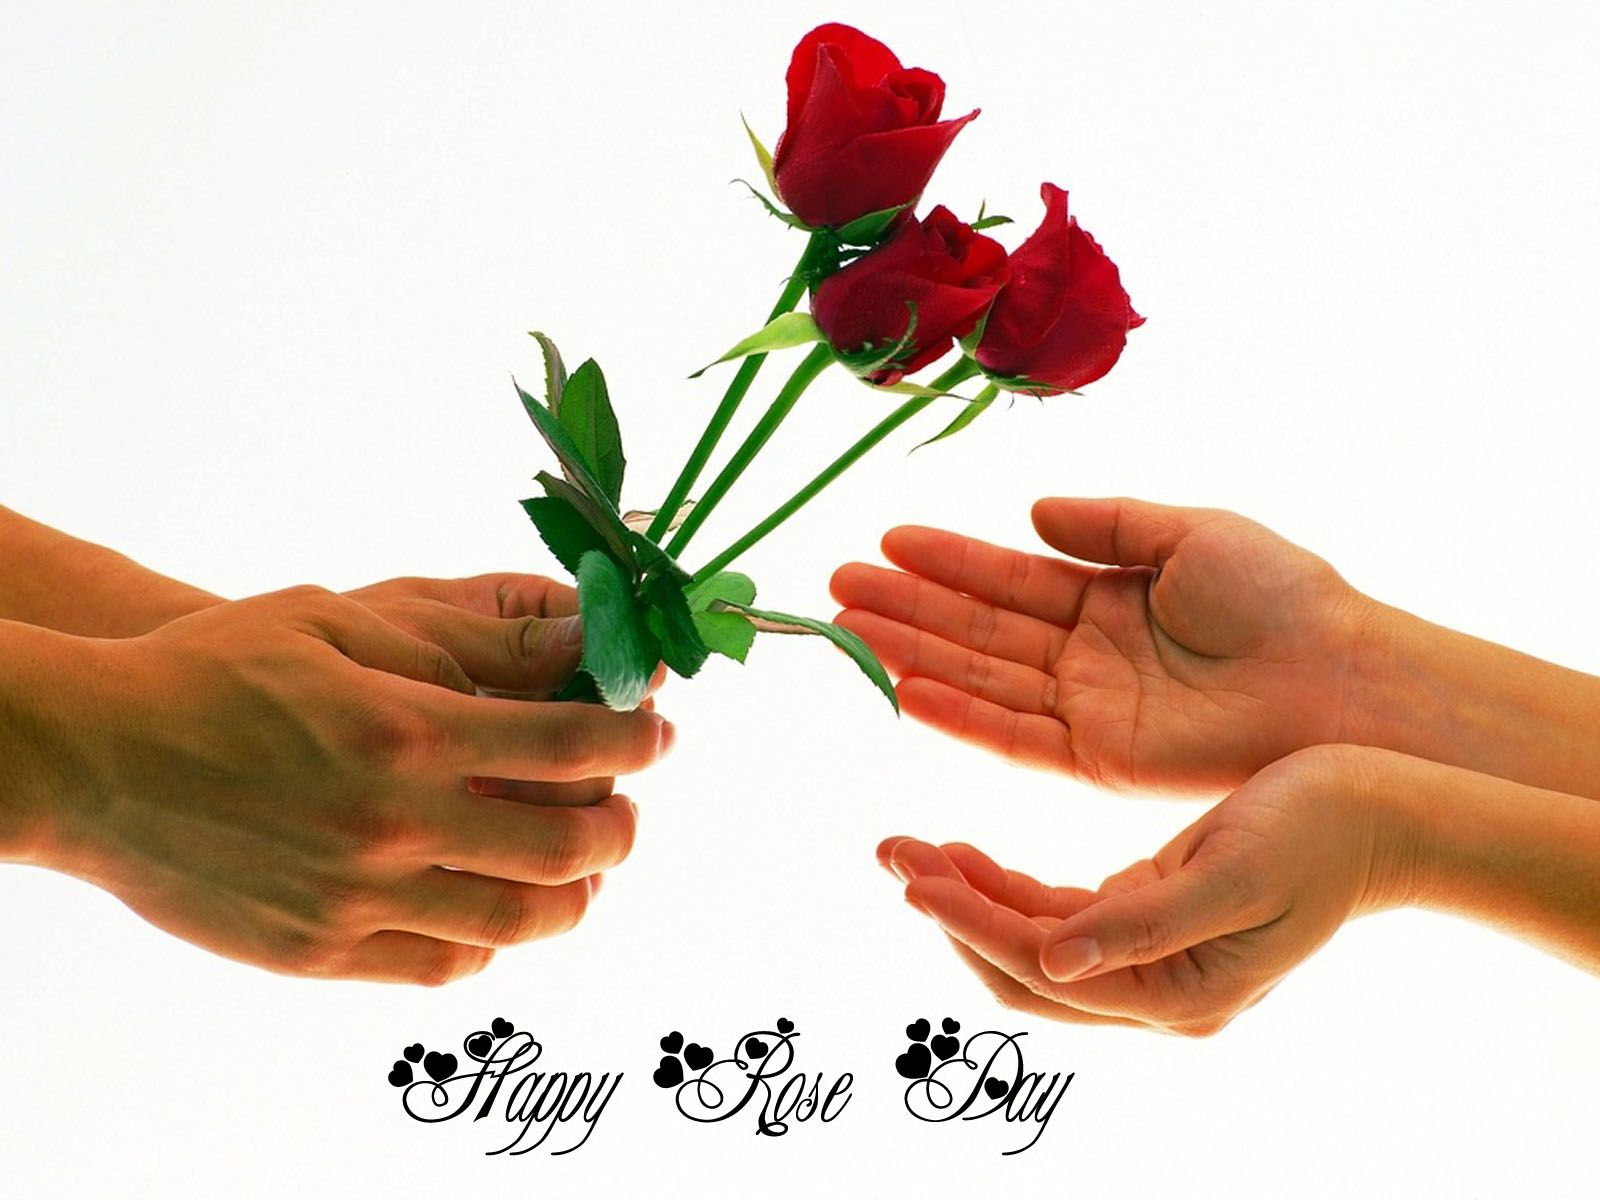 Happy Rose Day Love Psychic Happy New Year Quotes Quotes About New Year Happy rose day ke wallpaper download